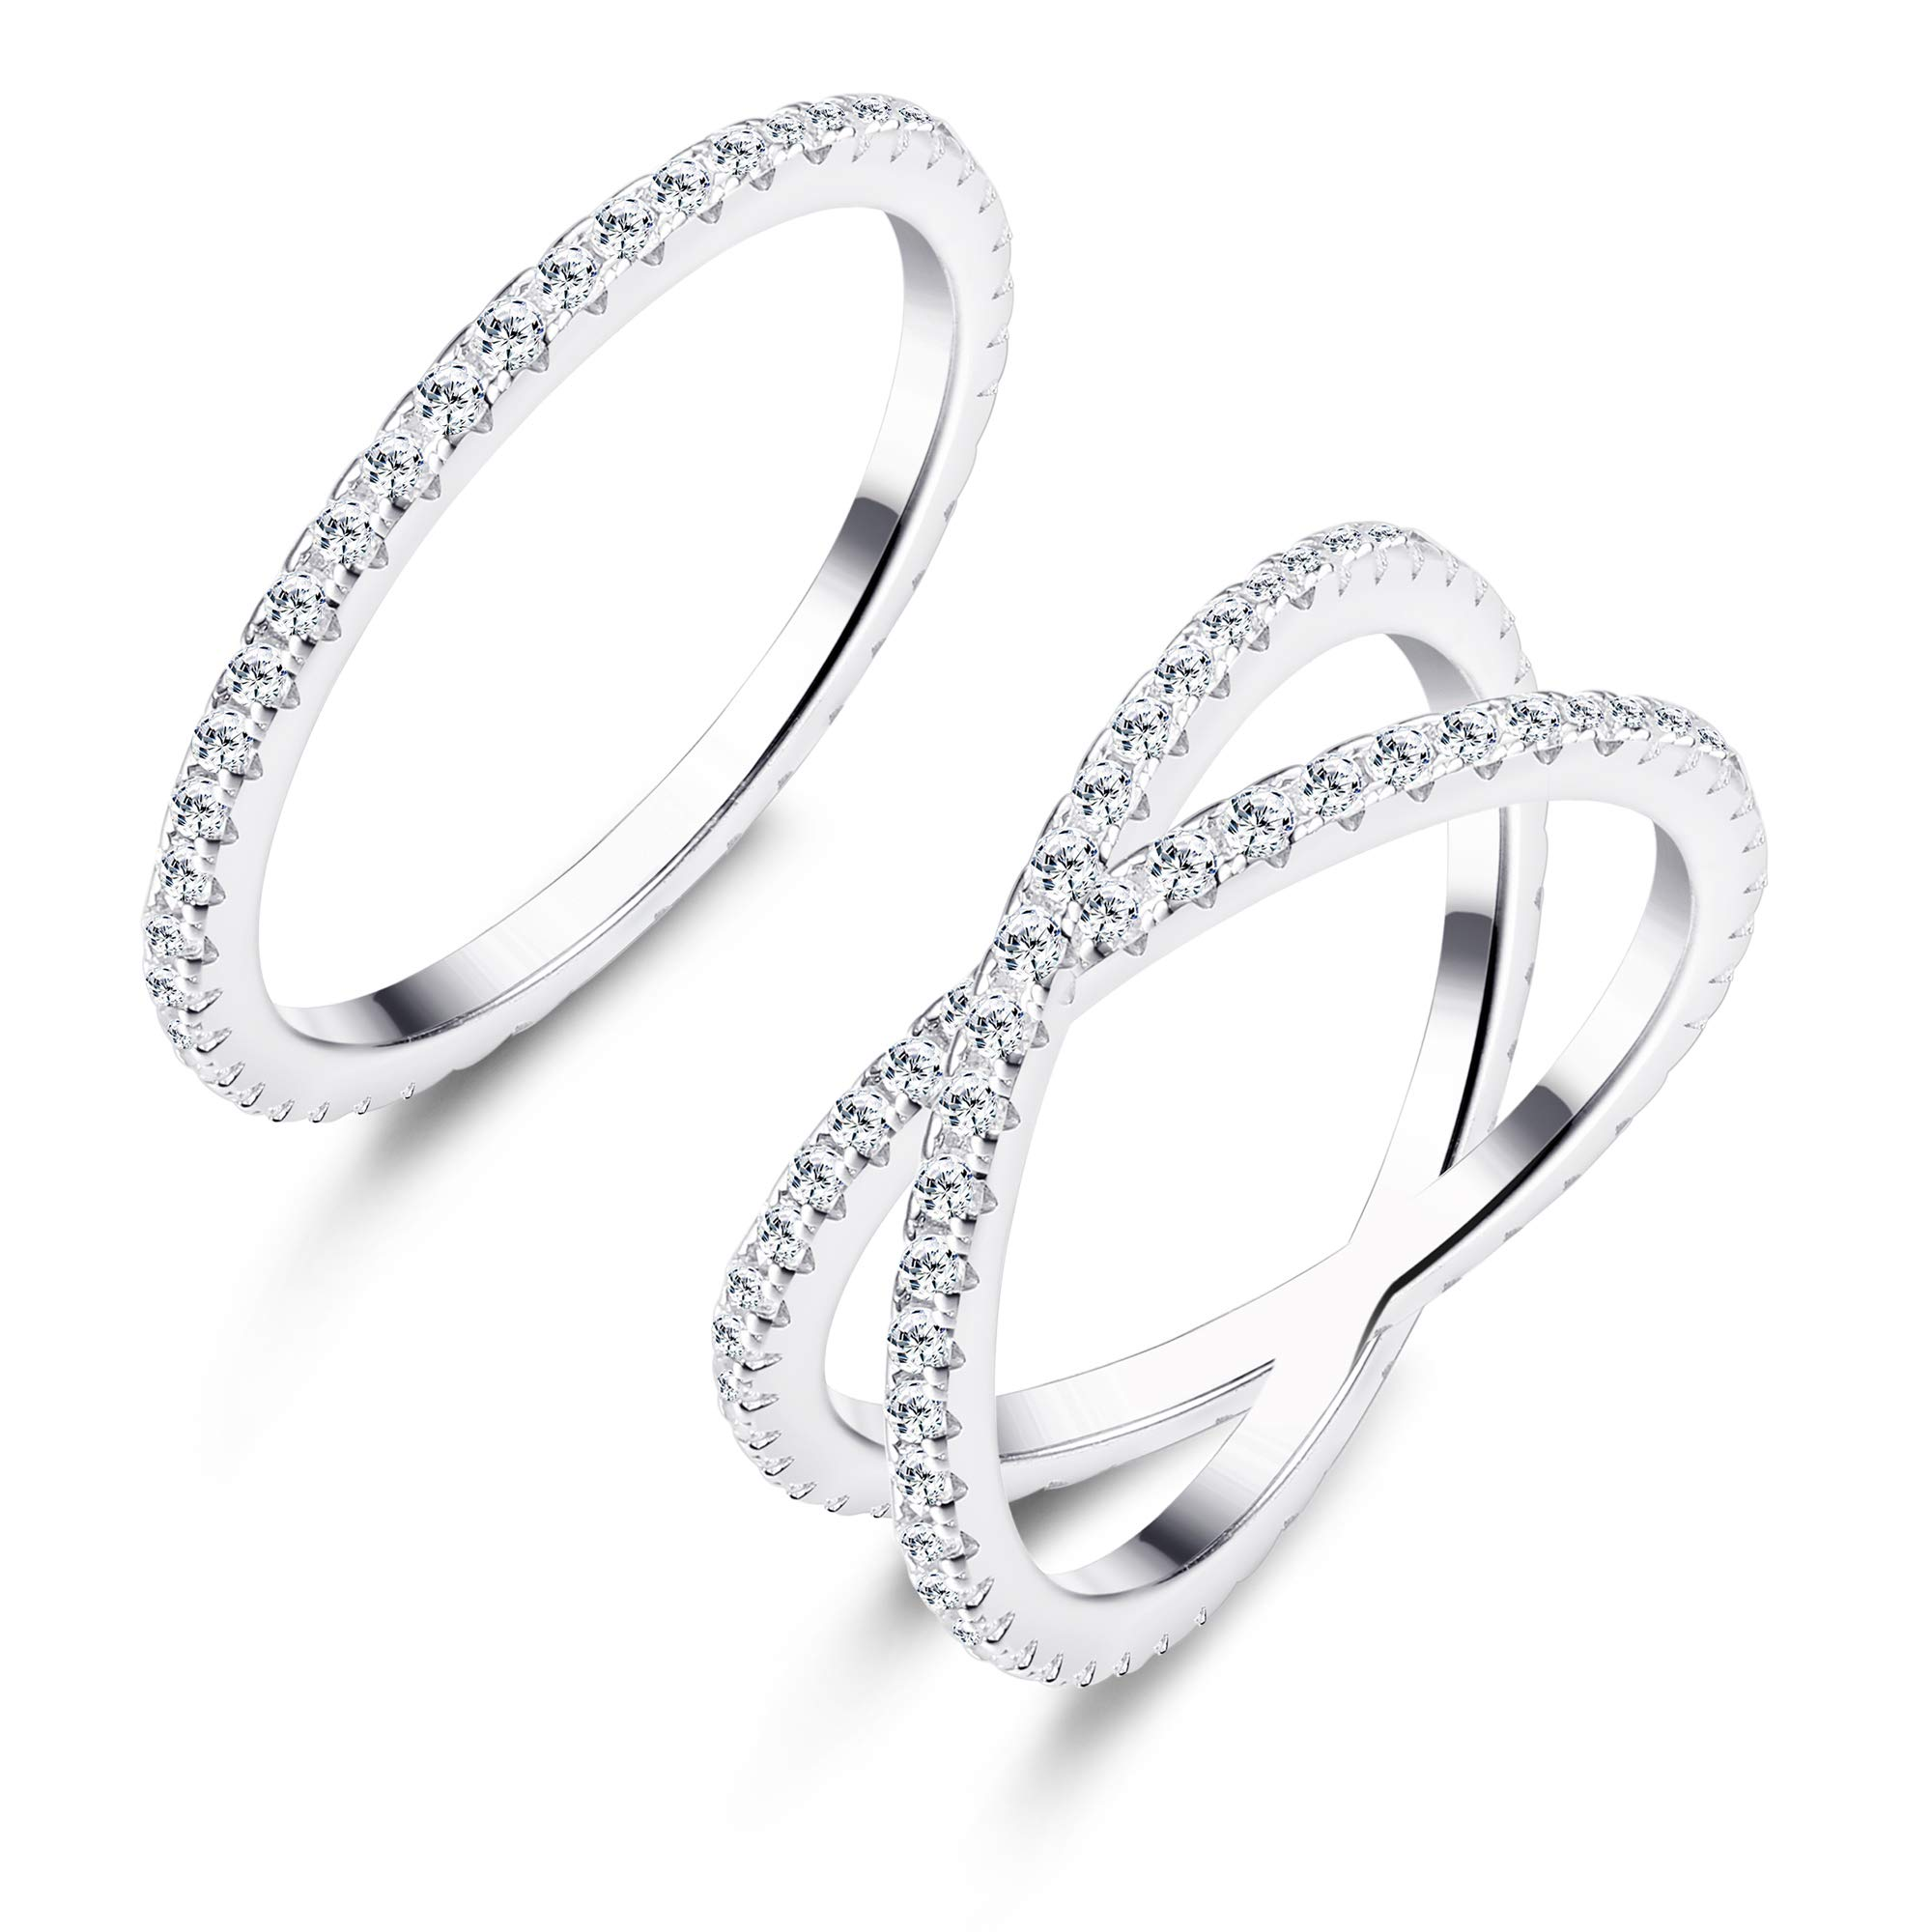 Udalyn 2 Pcs Silver Stacking Rings Women Girls X Criss Cross Ring Eternity Bands Engagement Rings 6